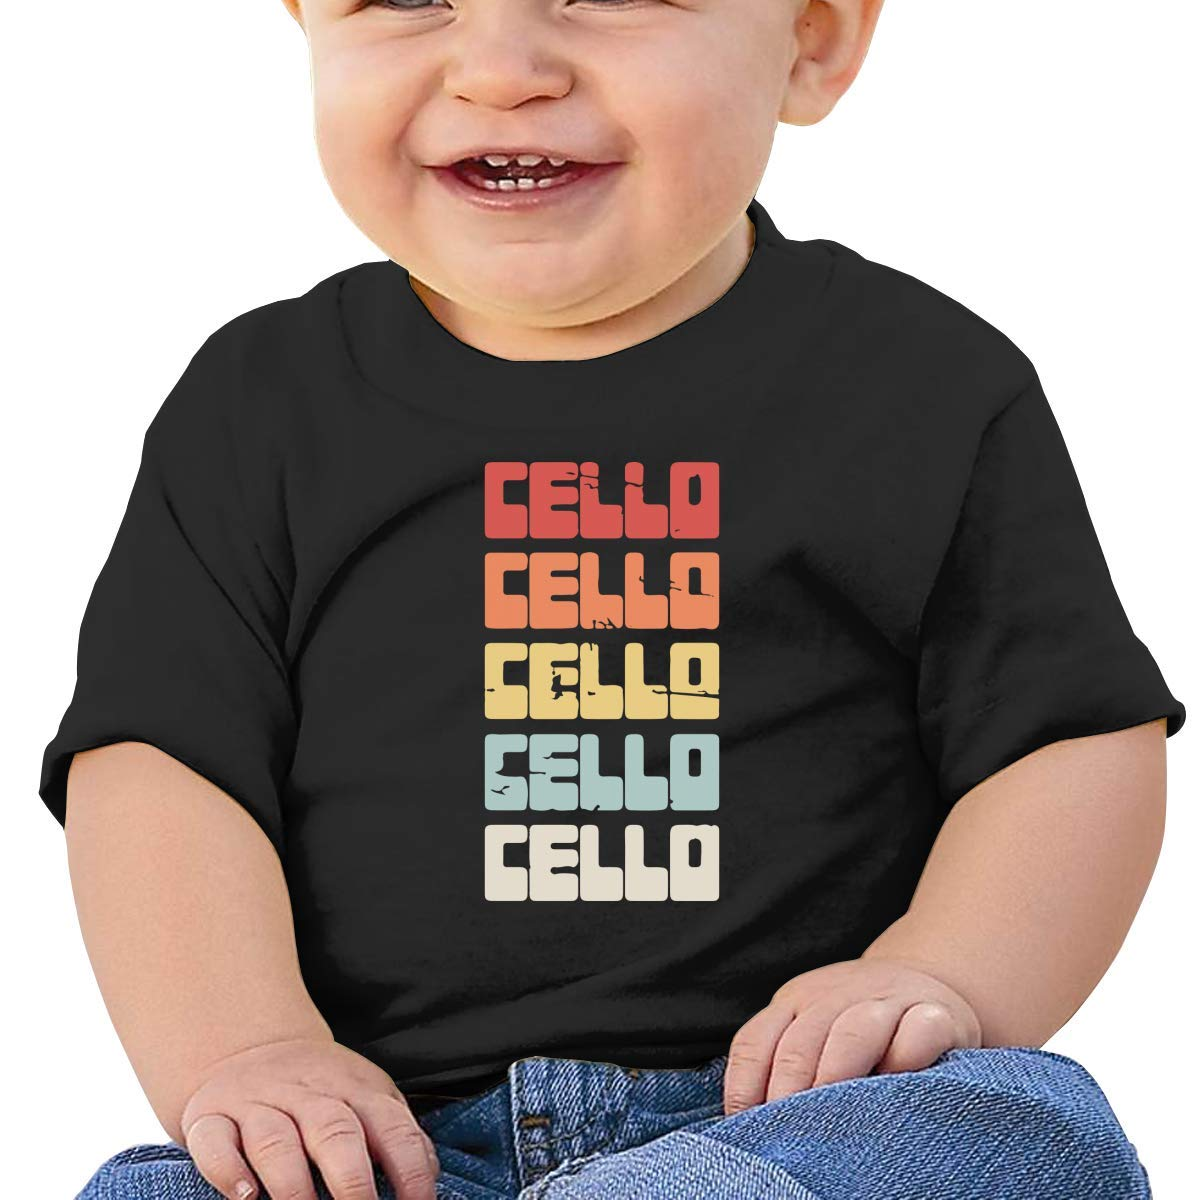 Vintage Cello Text Toddler Baby Newborn Short Sleeve Tee Shirt 6-24 Month Soft Tops